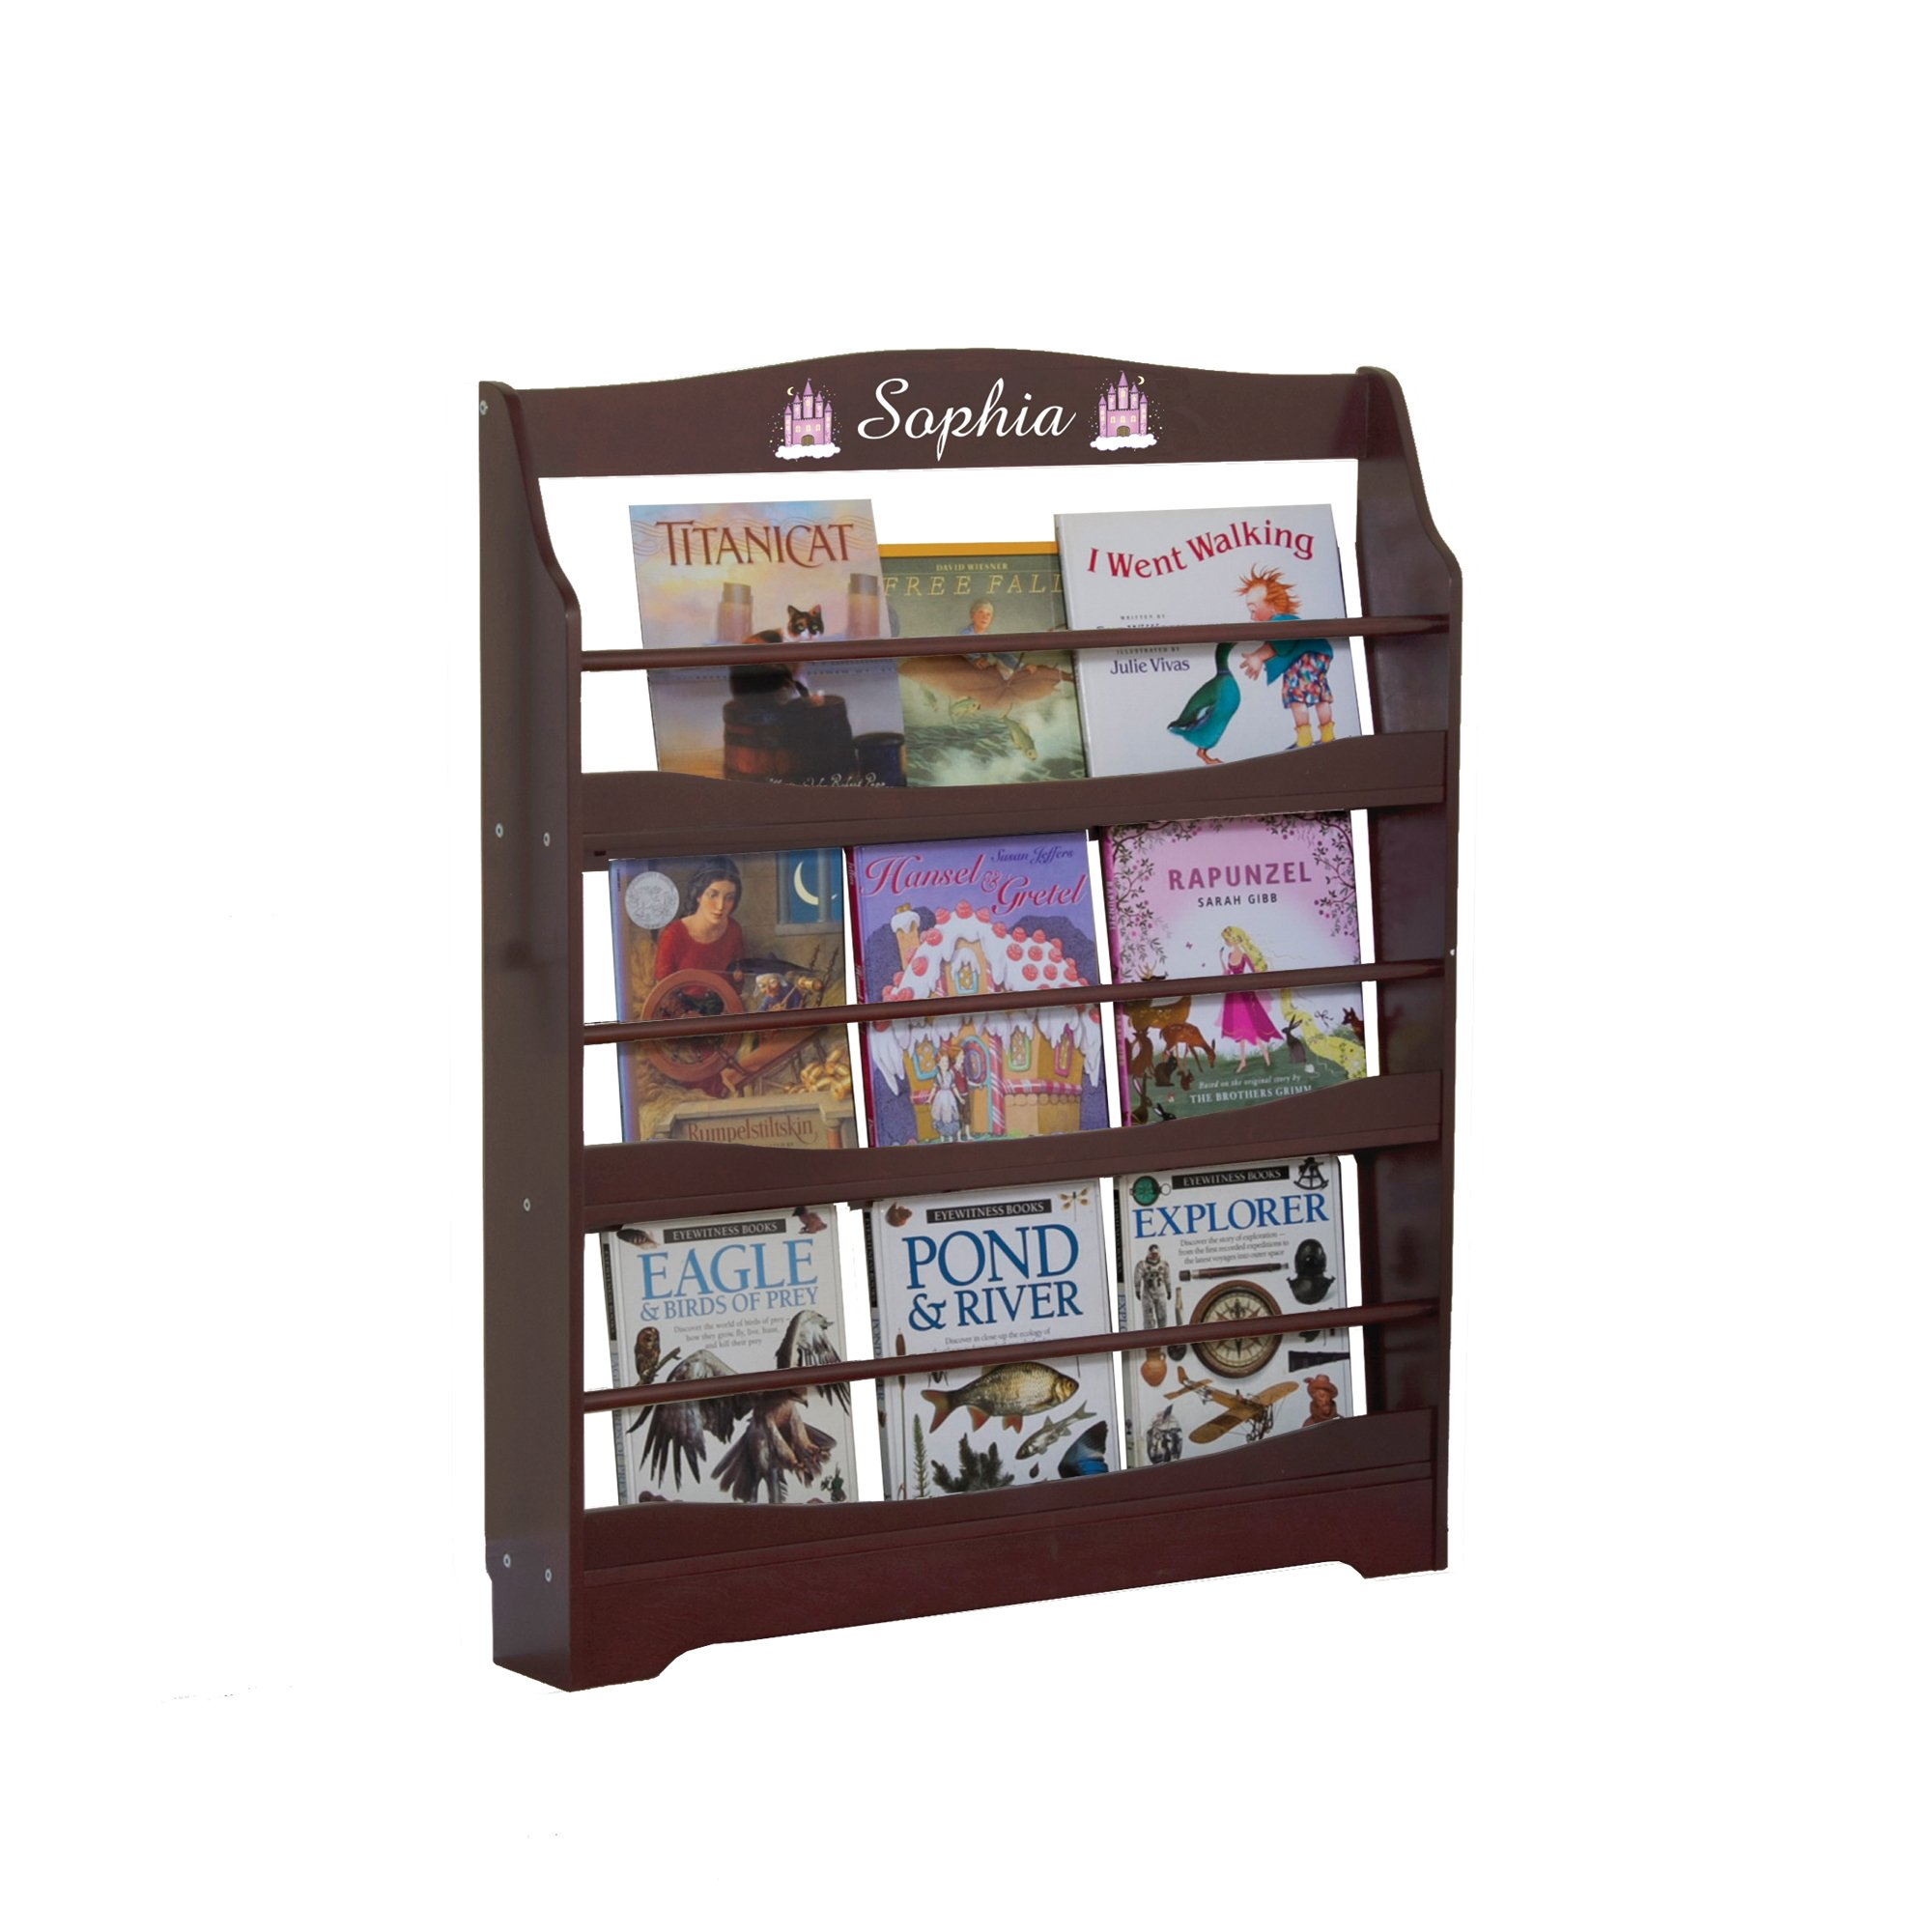 Guidecraft Expressions Espresso - Dark Cherry Bookrack - Storage Bookshelf Kids School Furniture